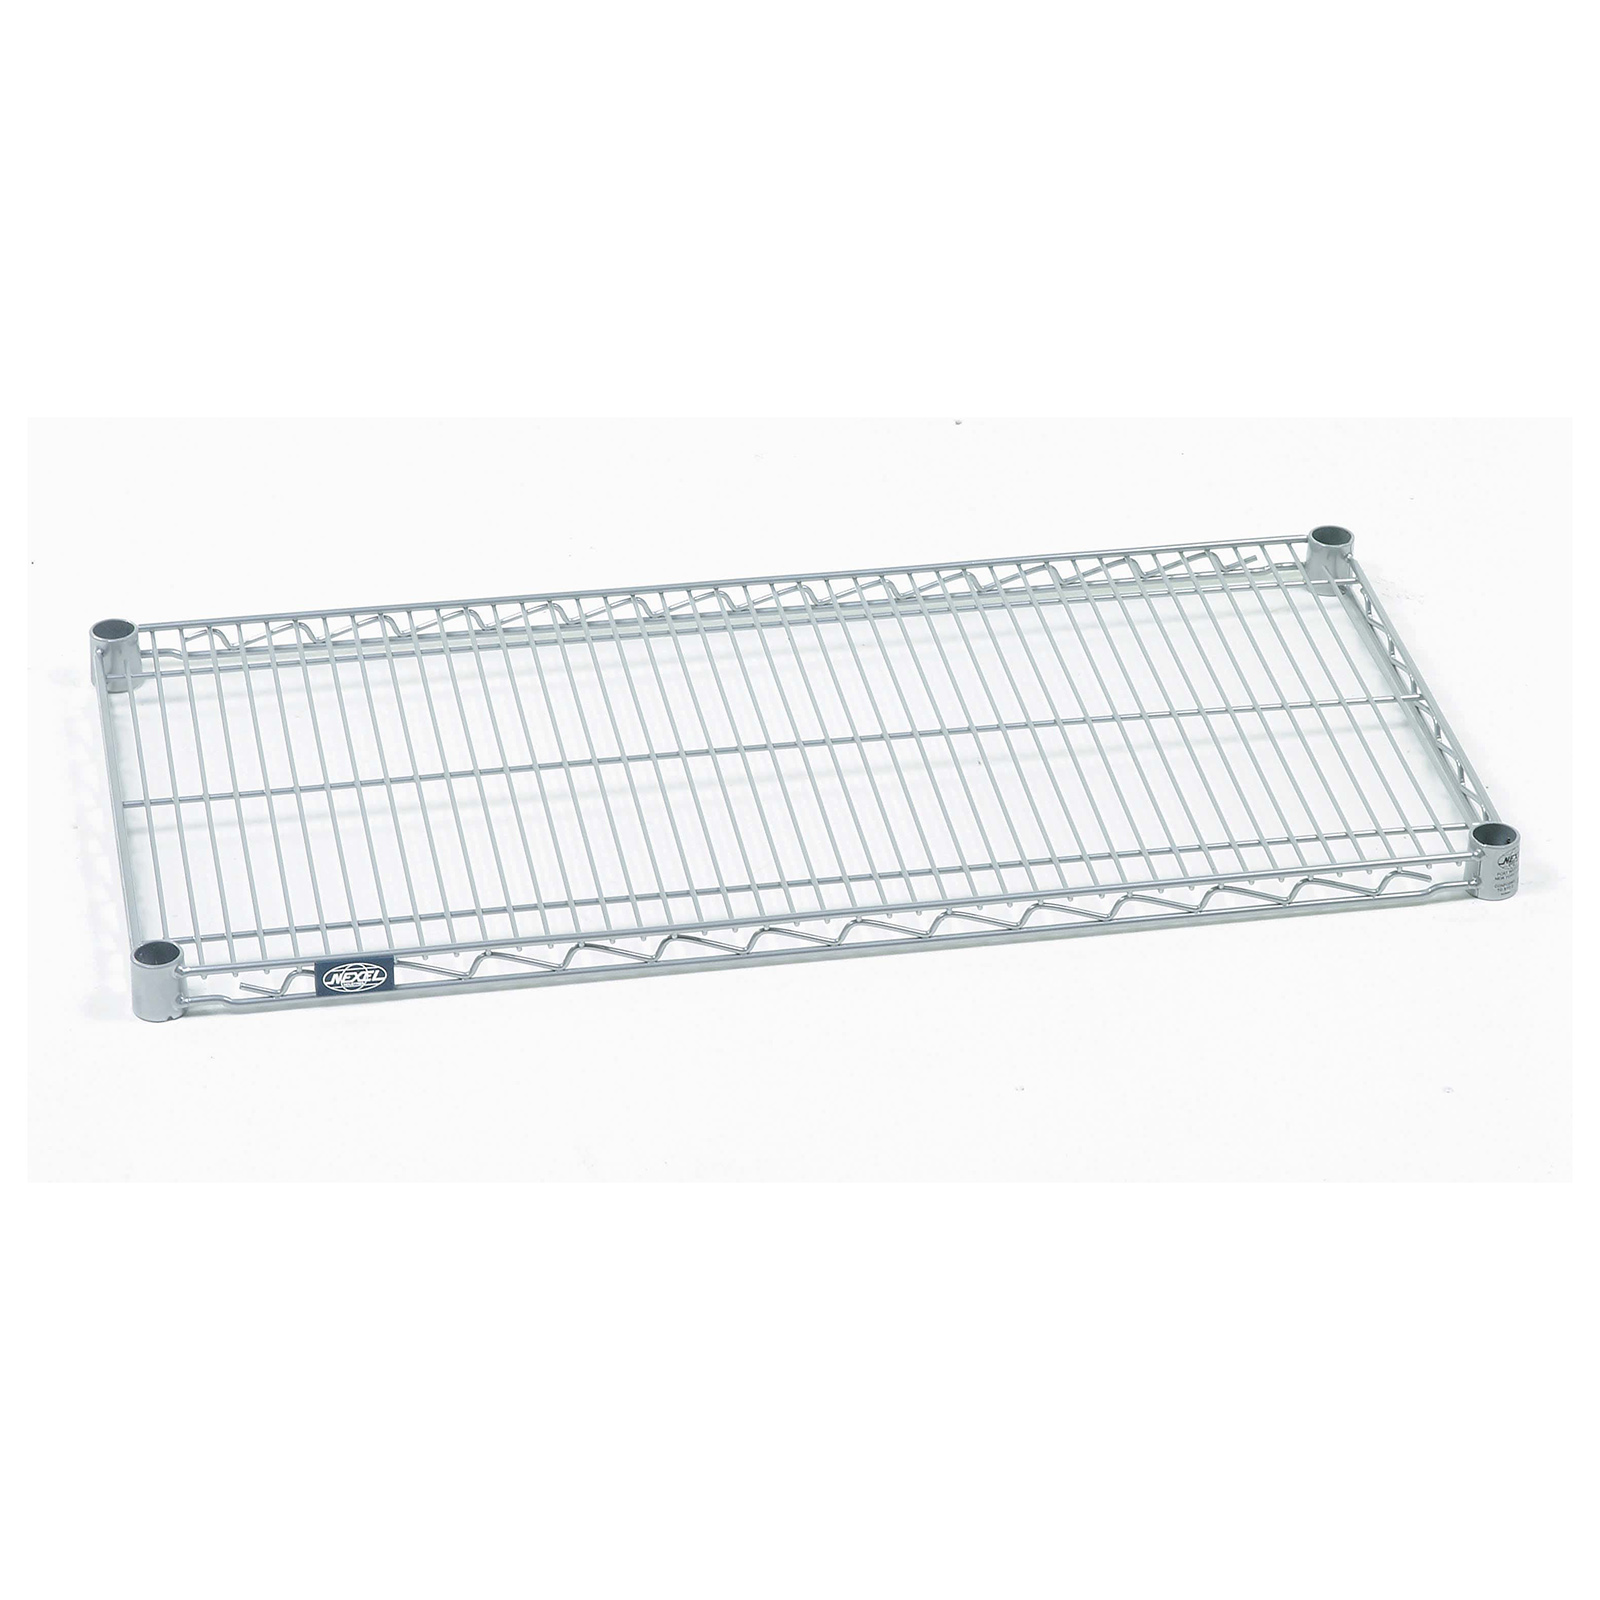 Nexel S3636EP wire shelves